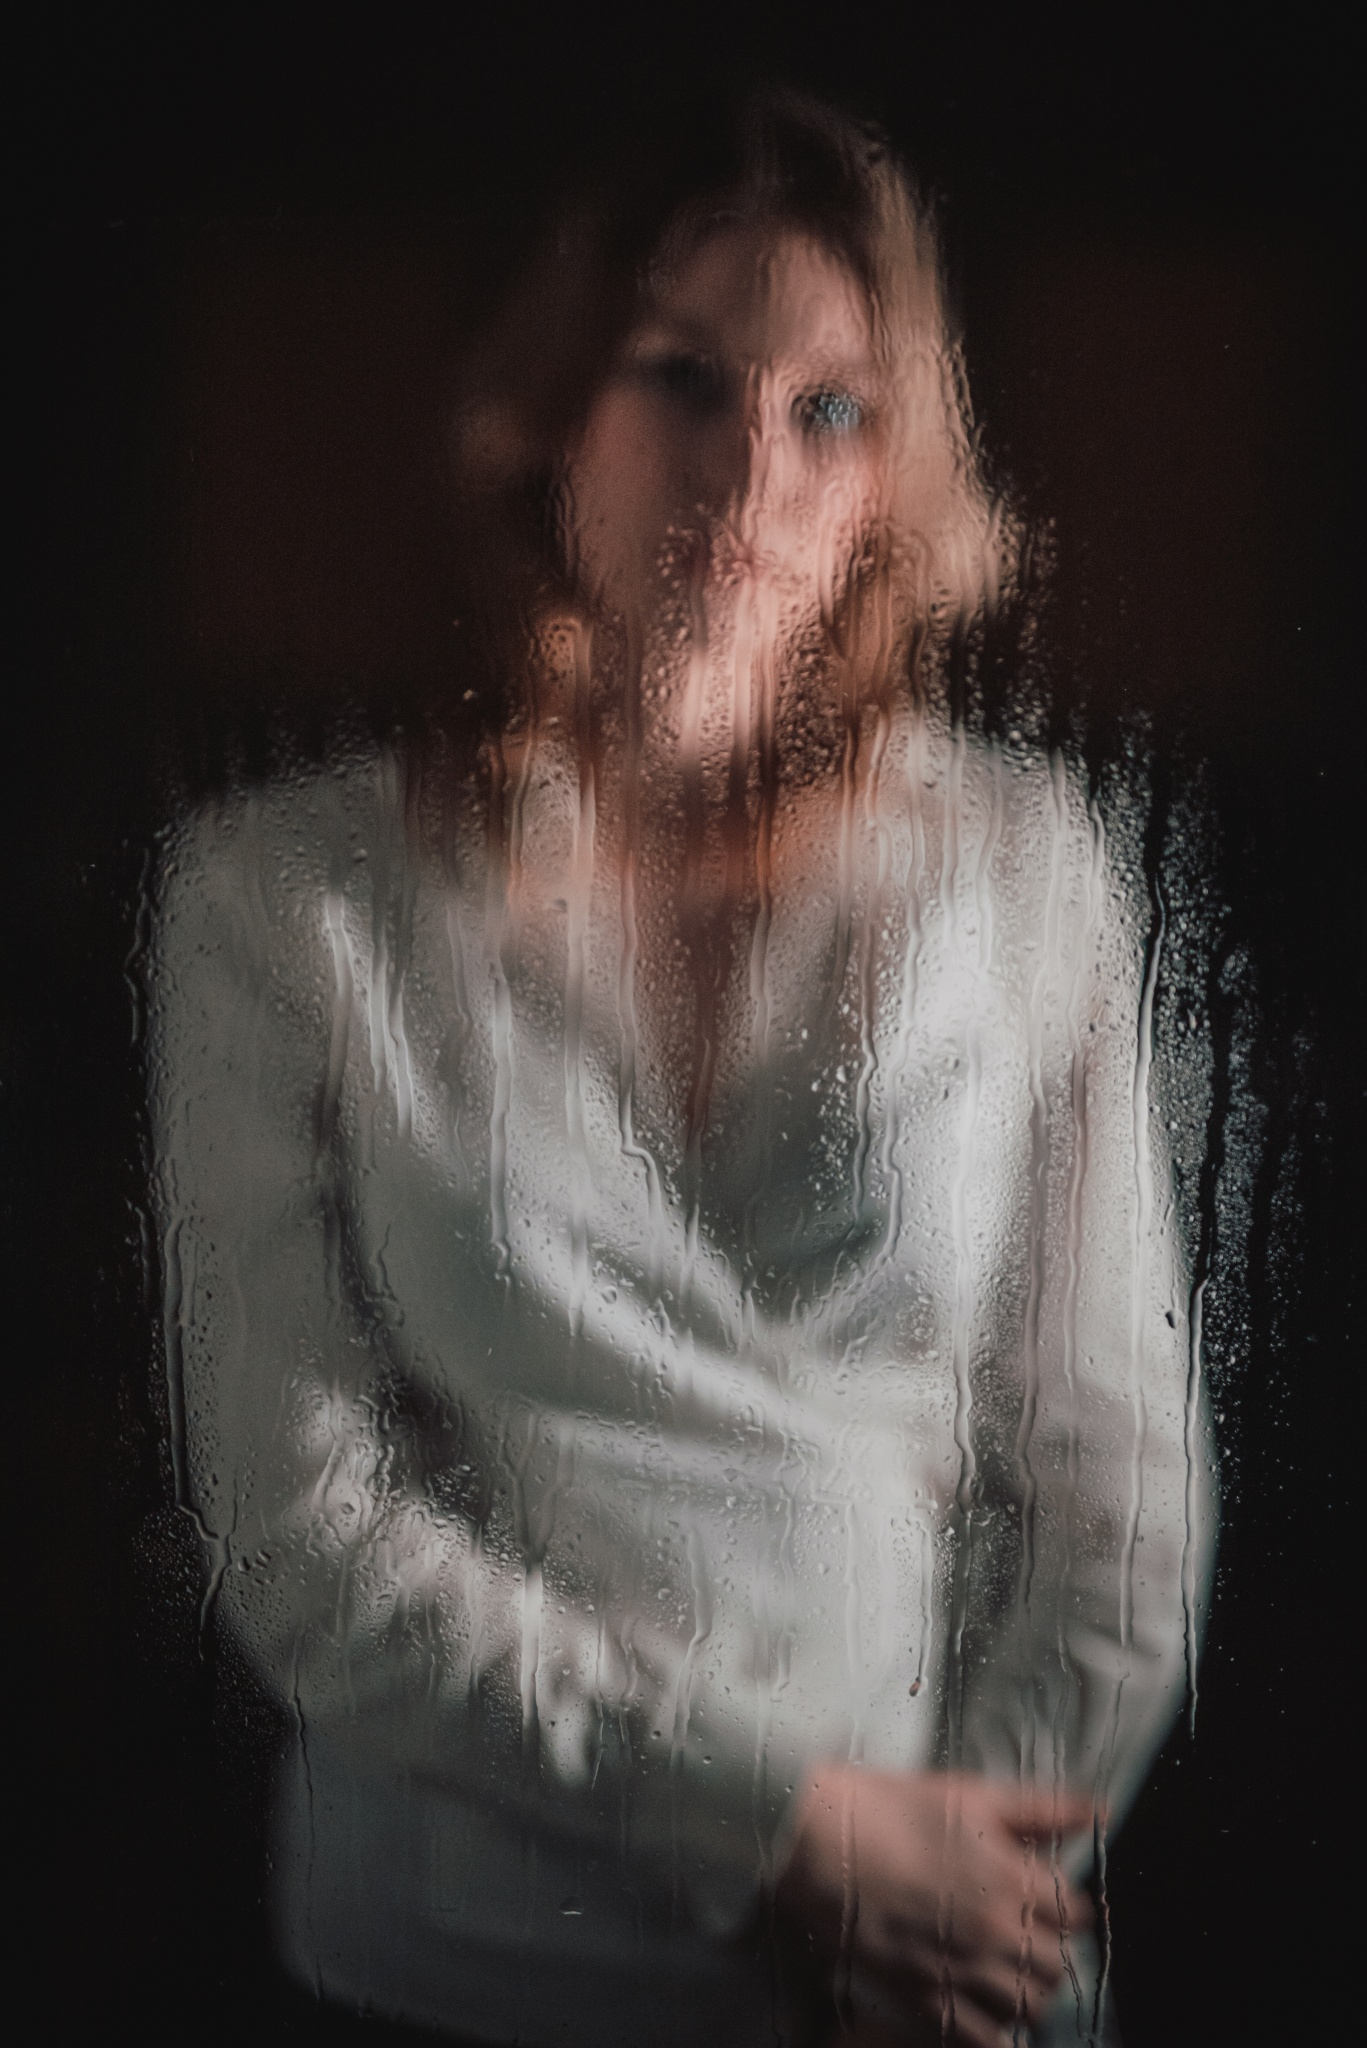 Take Striking Portraits Through Glass: Try Some Unique Portrait Photography in the Comfort of Your Home